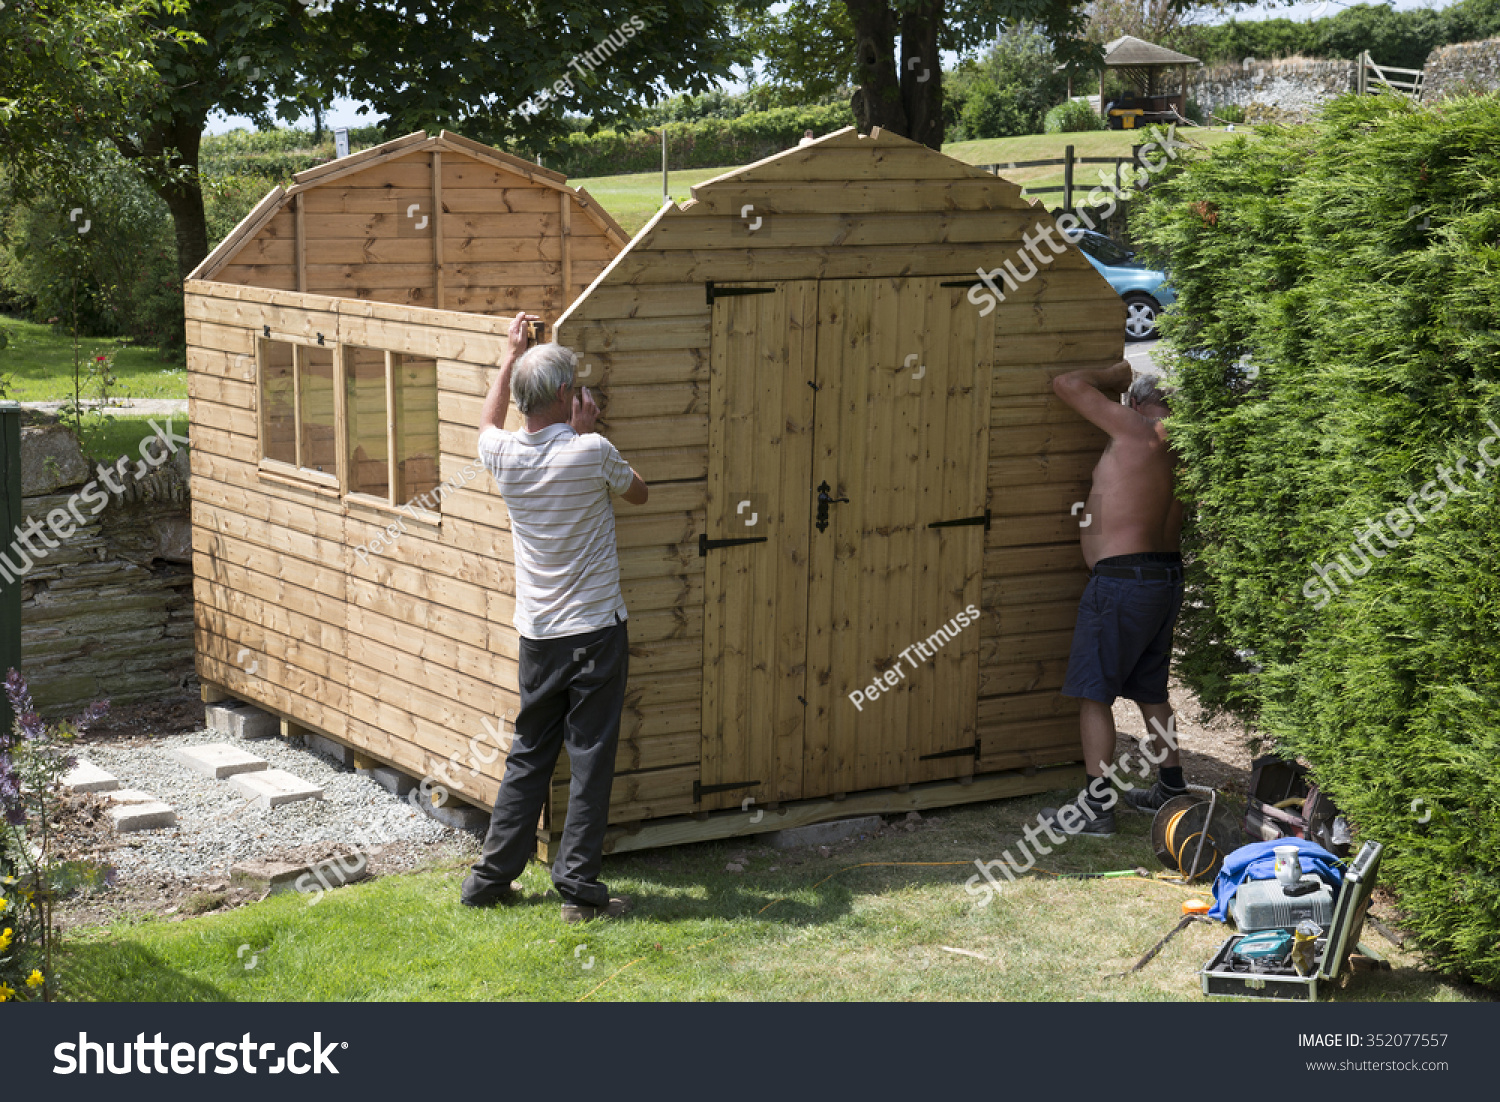 shed garden apex online x buy wooden today cat reduction sheds overlap flash value with